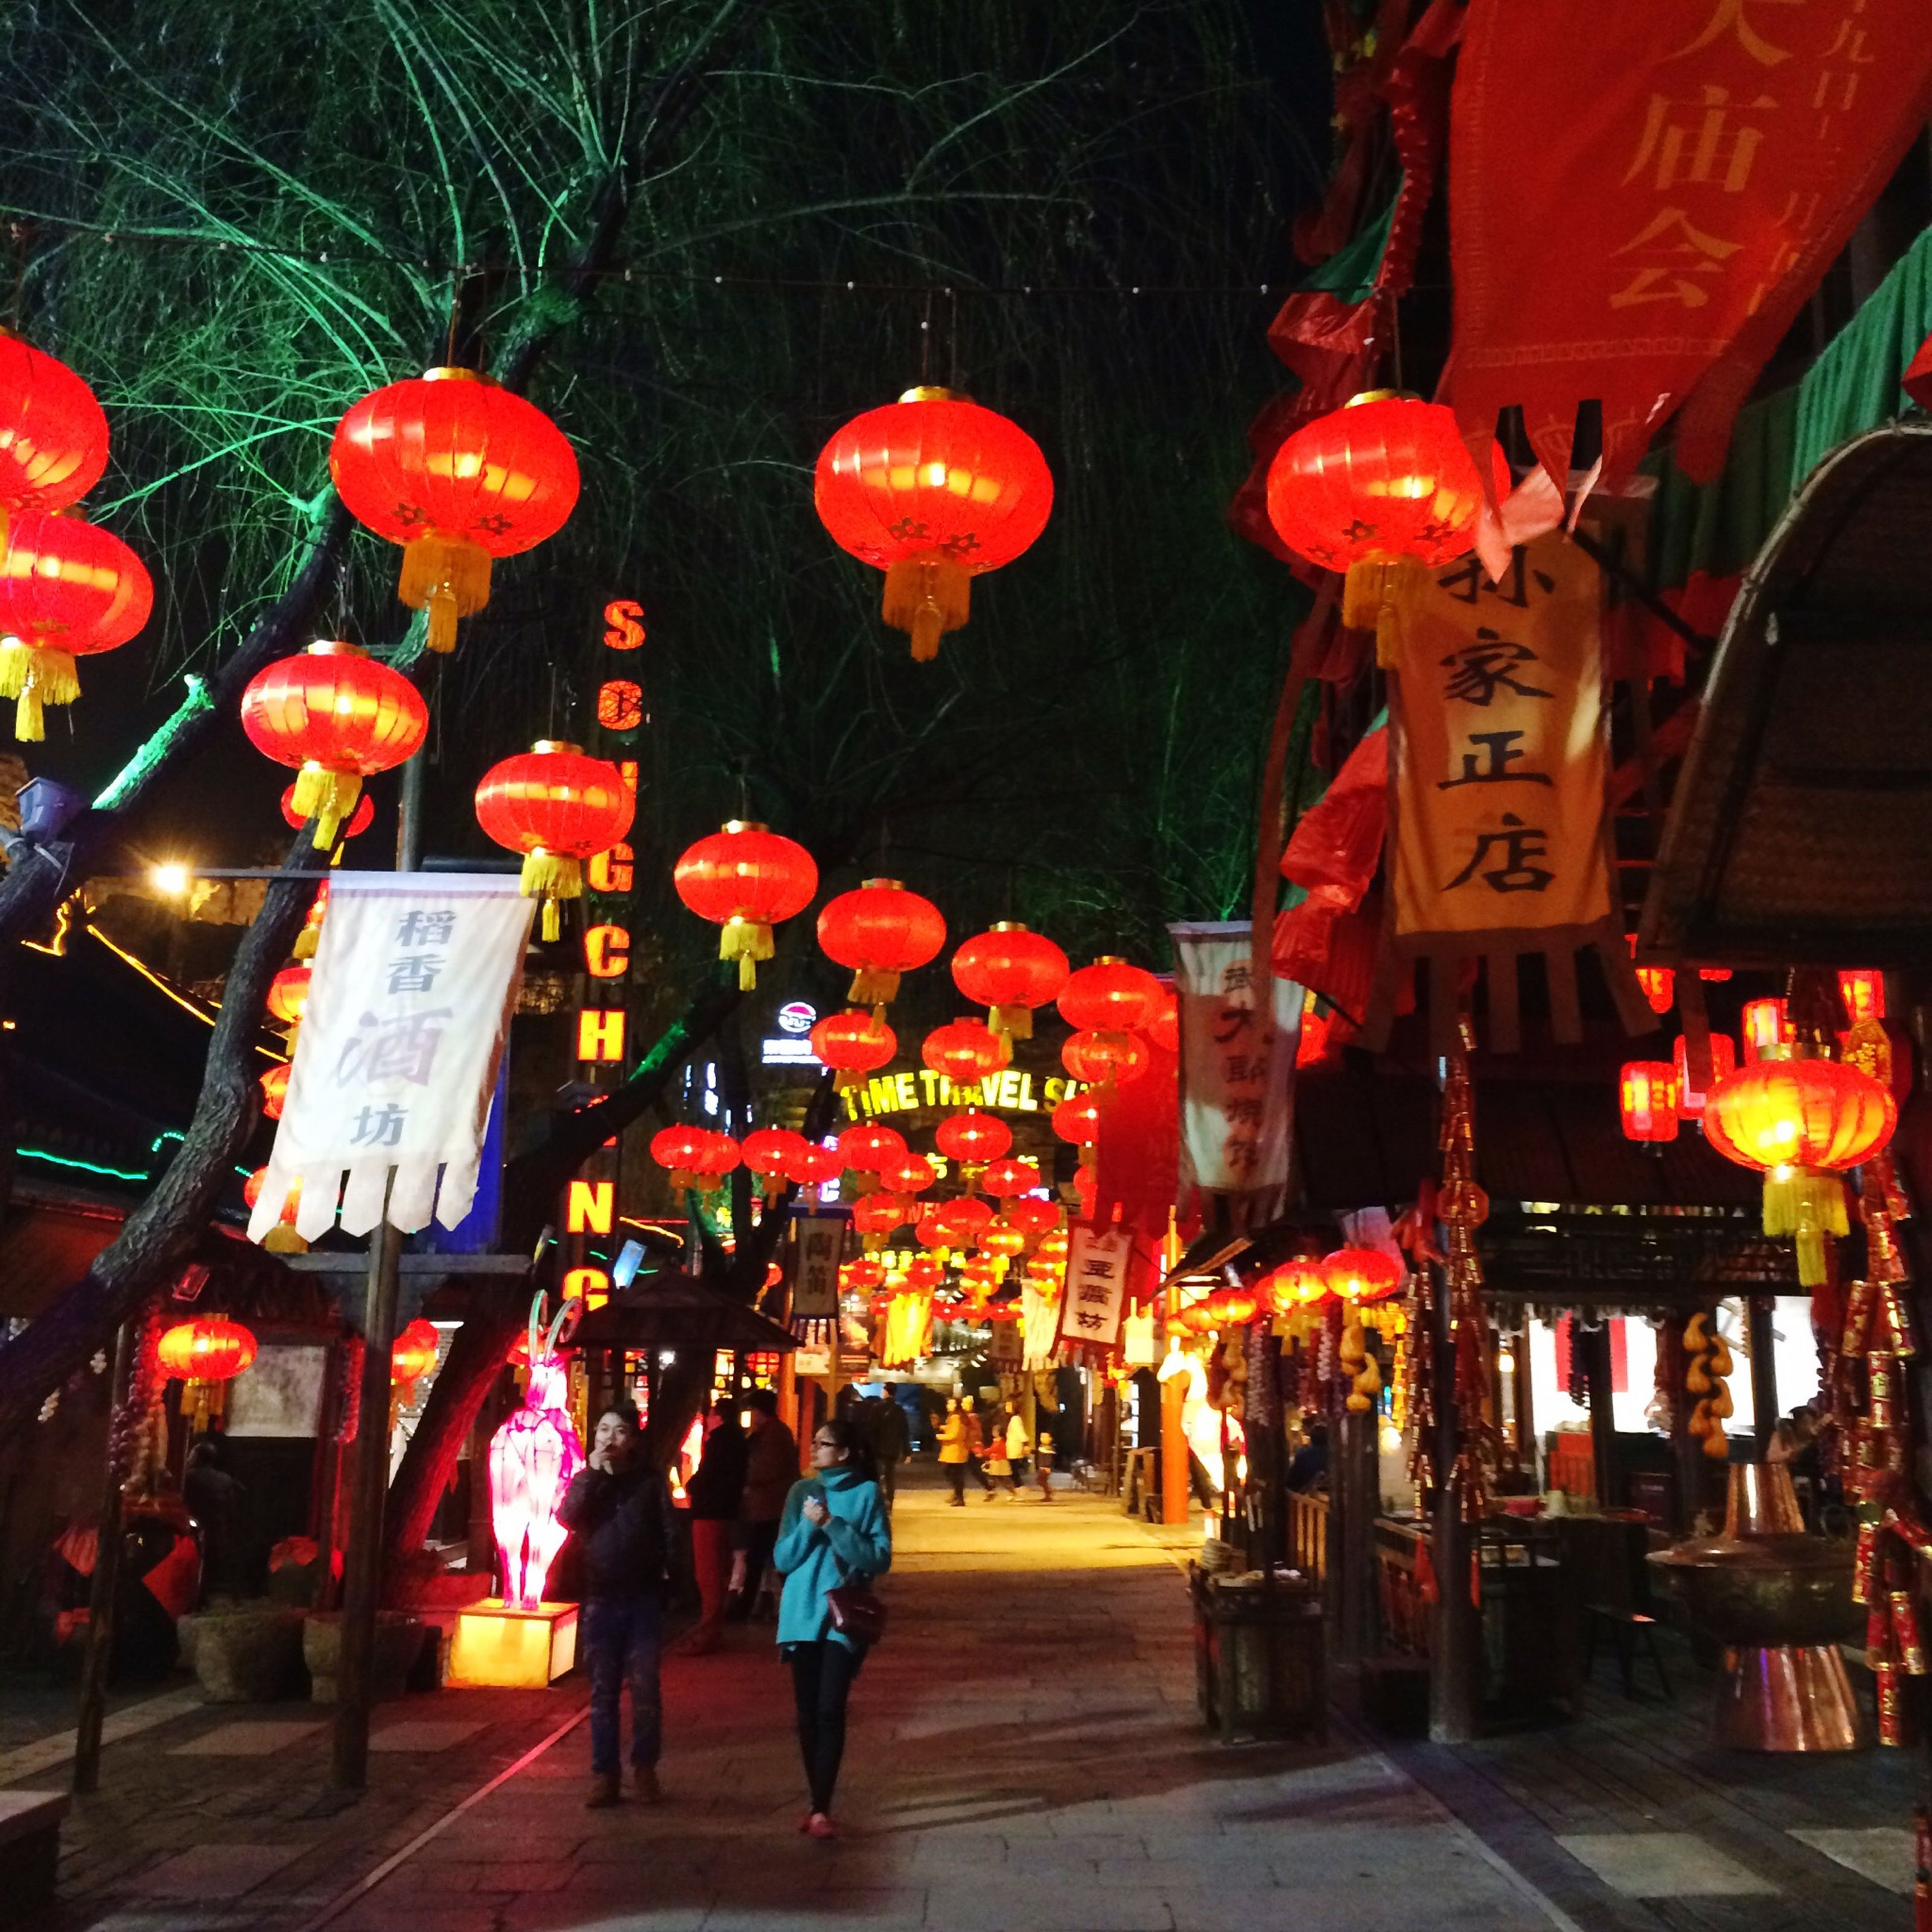 illuminated, night, men, lighting equipment, celebration, lantern, red, cultures, tradition, person, decoration, large group of people, hanging, lifestyles, leisure activity, culture, religion, traditional festival, built structure